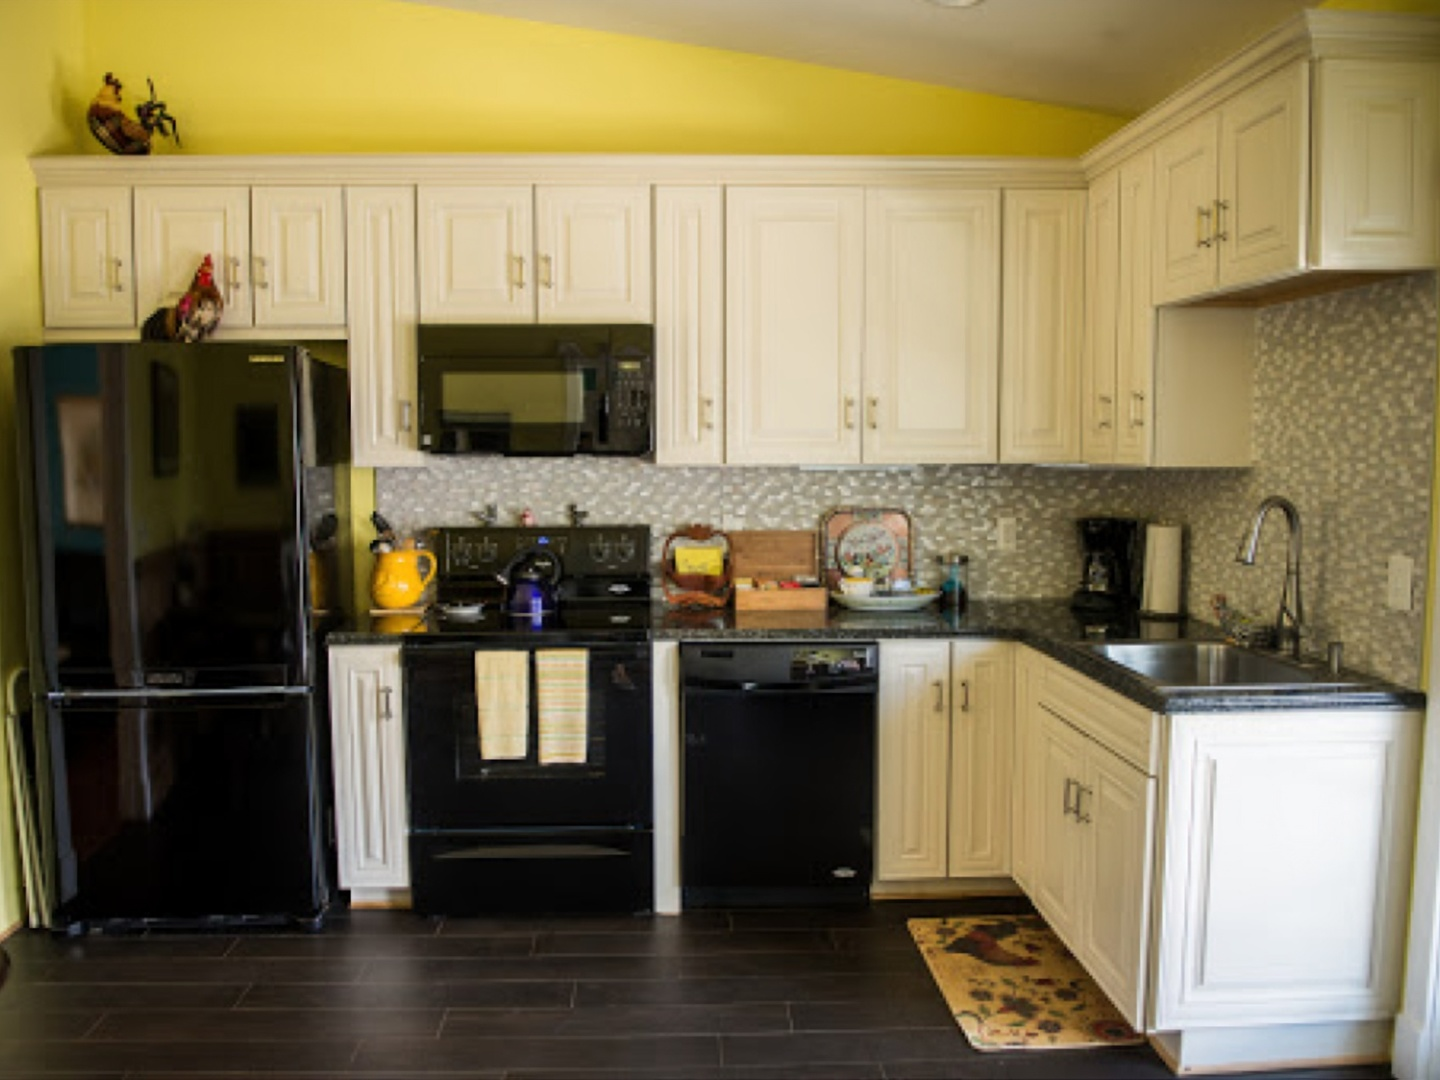 A kitchen with stainless steel appliances and wooden cabinets at Briar Patch Bed & Breakfast Inn.